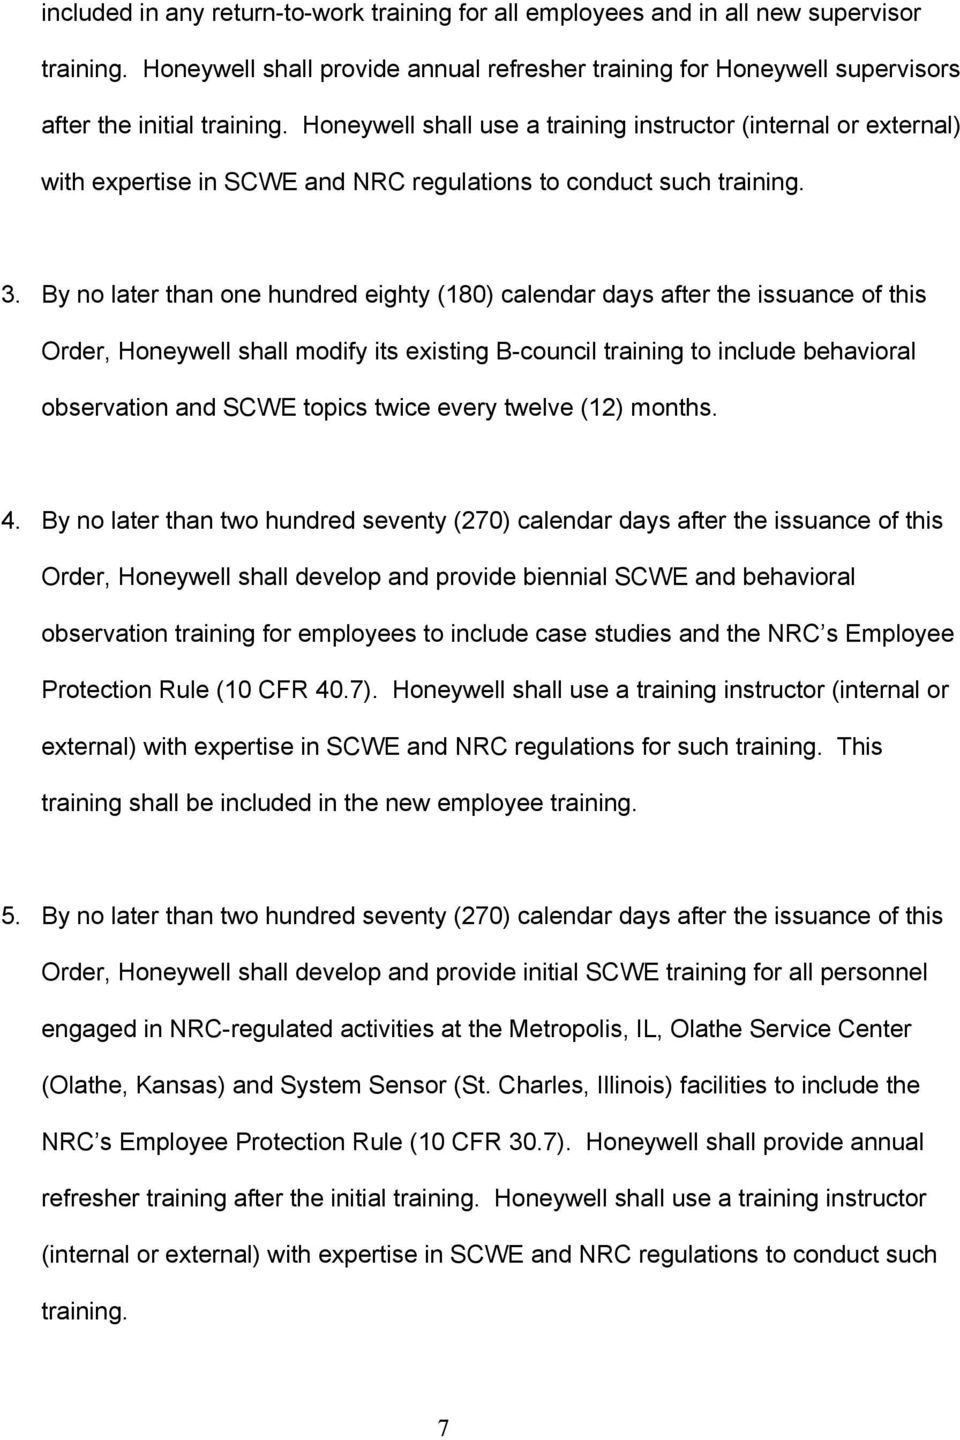 By no later than one hundred eighty (180) calendar days after the issuance of this Order, Honeywell shall modify its existing B-council training to include behavioral observation and SCWE topics